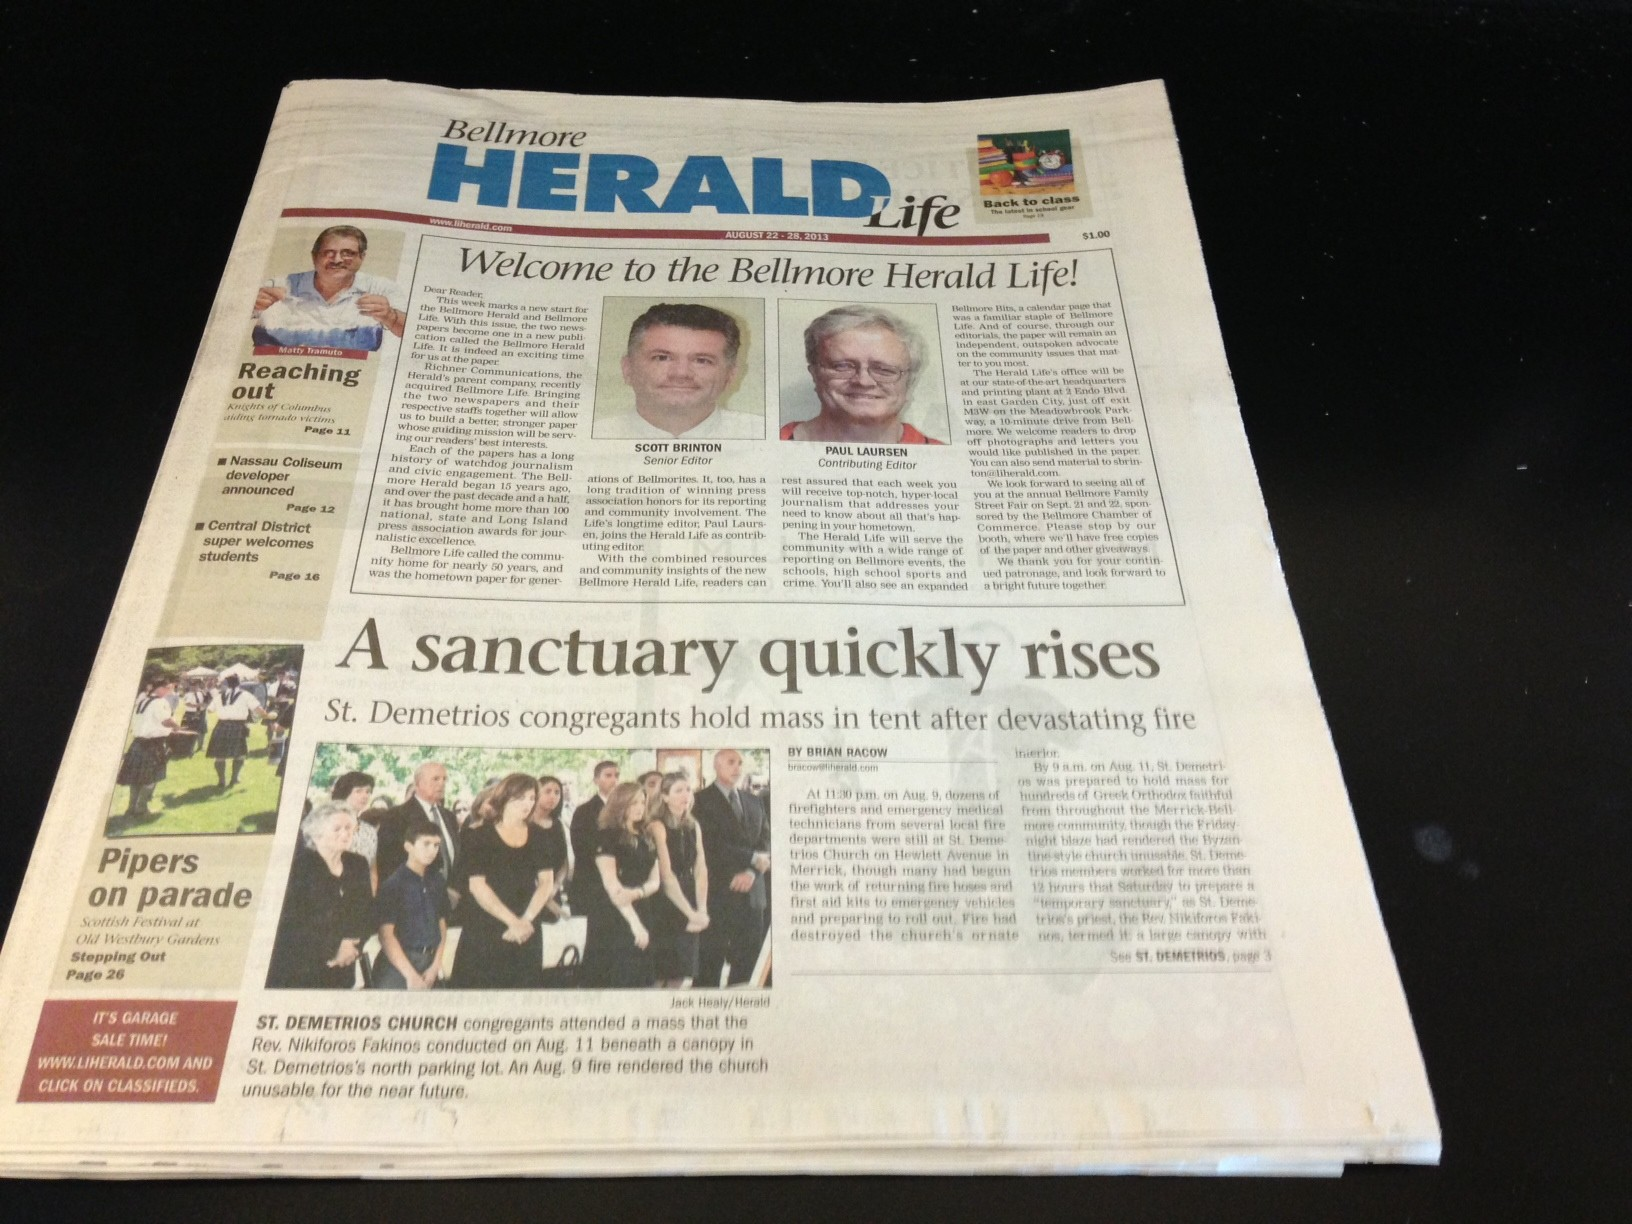 The new Bellmore Herald Life.